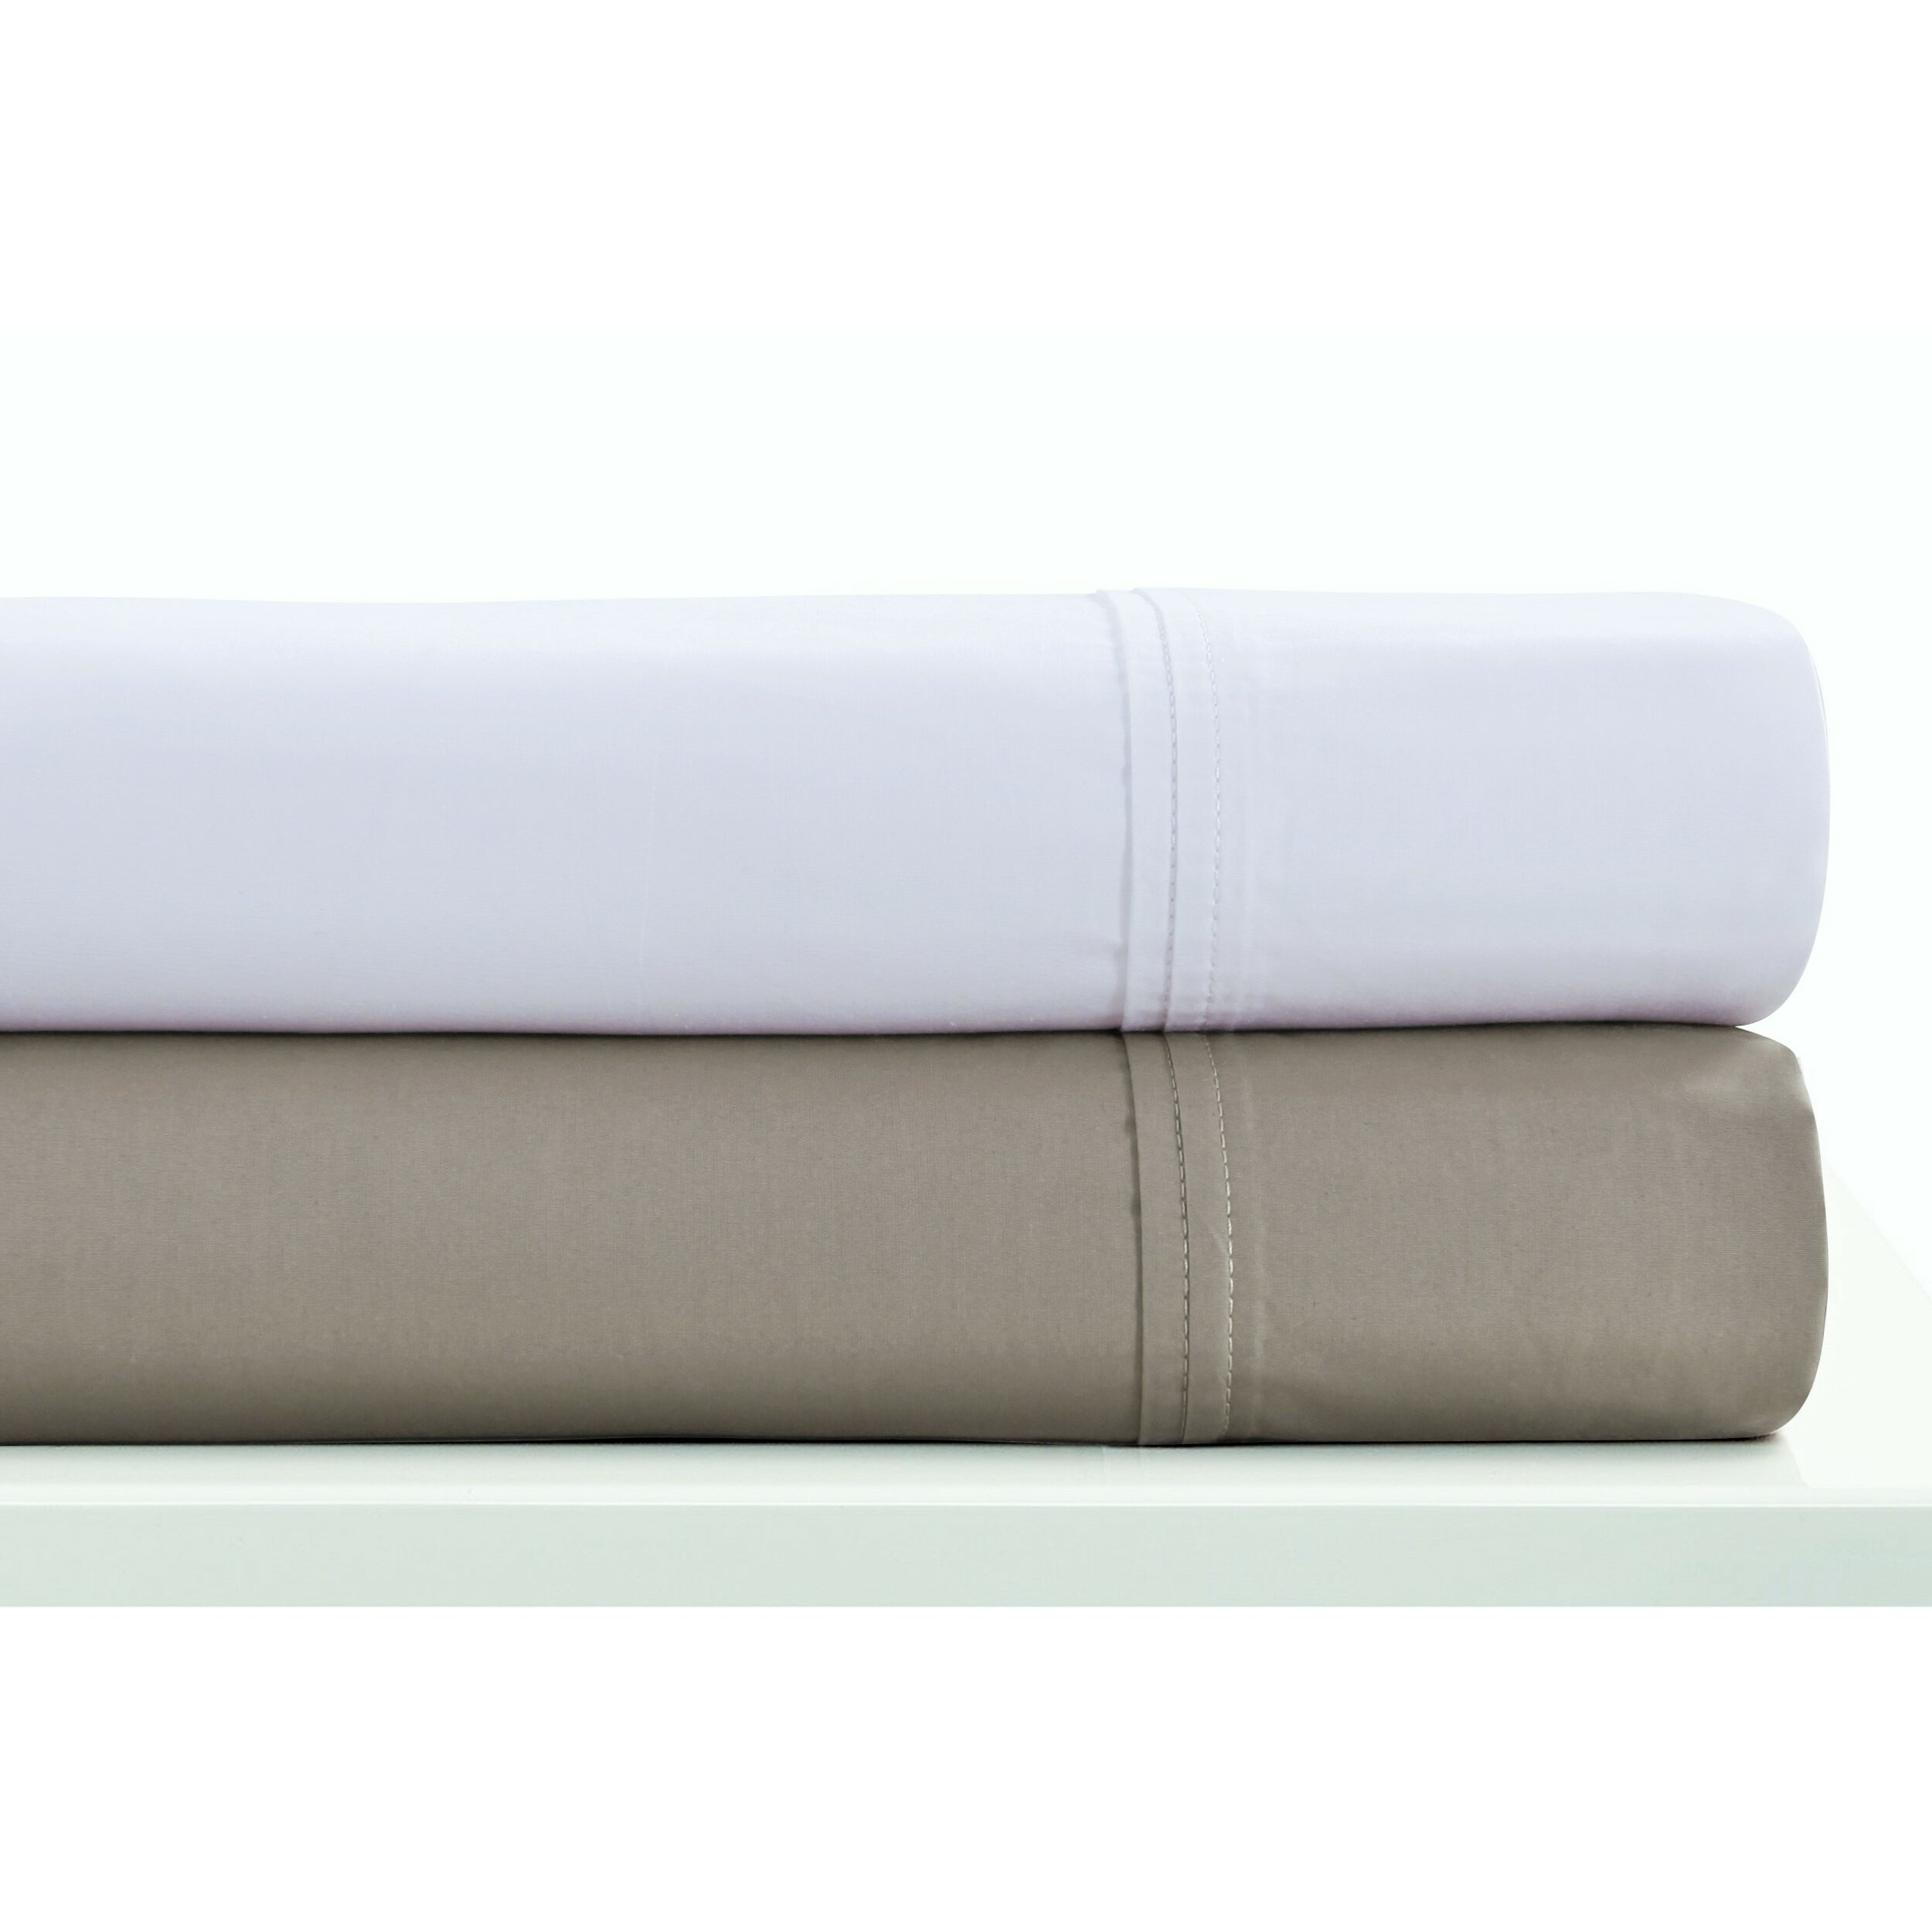 Tribeca Living 400 Thread Count Egyptian Cotton Percale